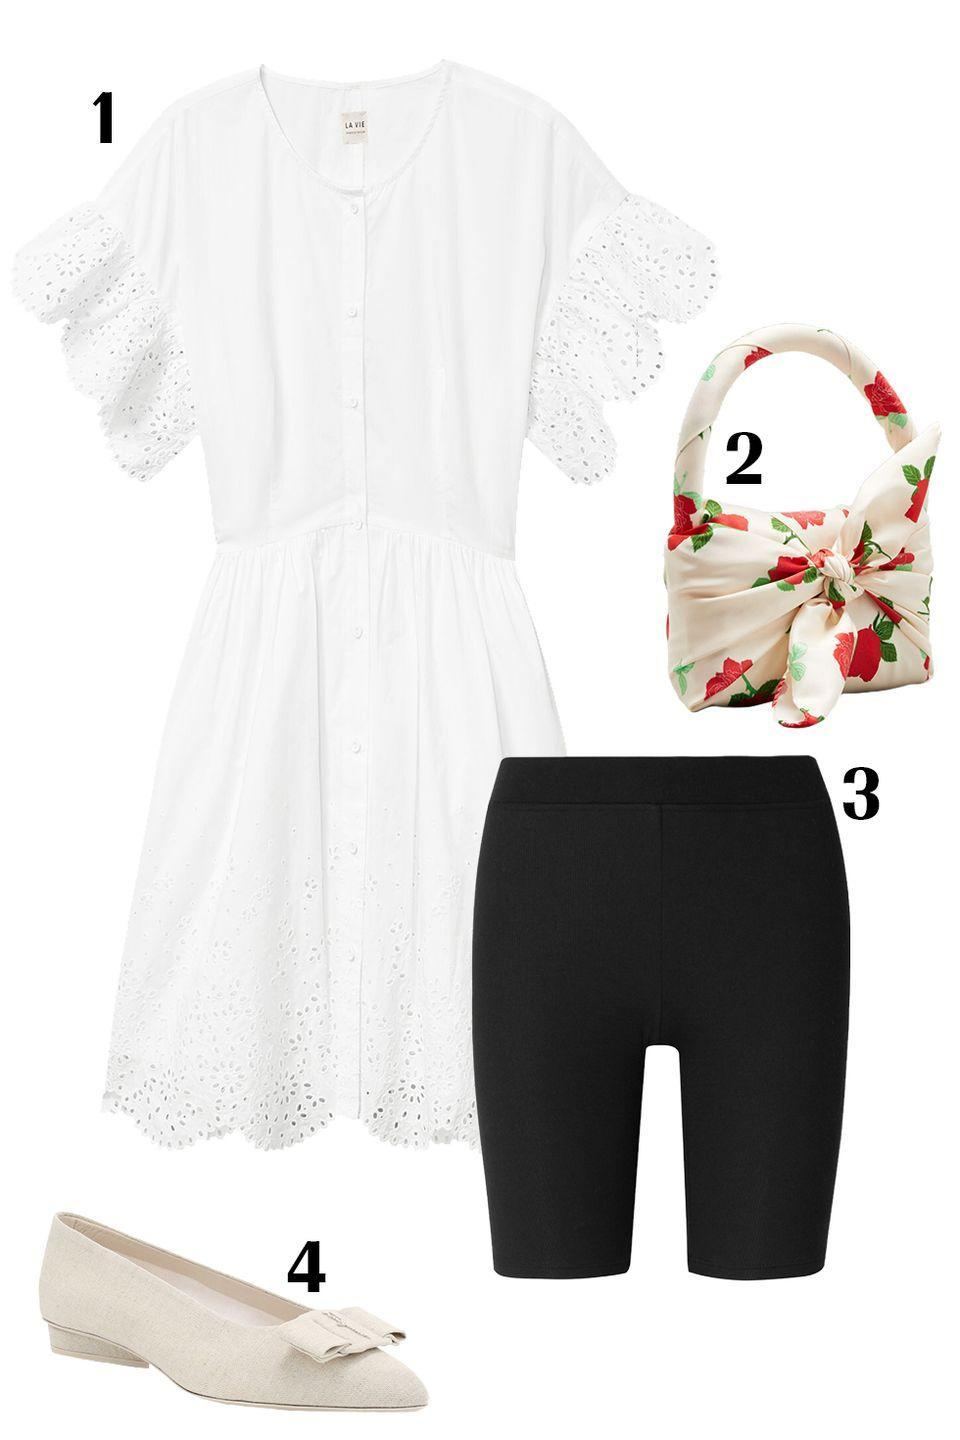 "<p>A white eyelet babydoll is quintessential summertime piece. While this mini-dress can be worn solo, pair with biker shorts, and leave unbuttoned from the waist down to give it an extra twist. Pointed-toe flats will give it a polished touch and are an elegant, yet practical summertime shoe choice. </p><p>1) <a href=""https://www.rebeccataylor.com/la-vie-etienne-eyelet-dress/220195D415.html?dwvar_220195D415_color=MILK&cgid=dresses-and-jumpsuits#start=1"" rel=""nofollow noopener"" target=""_blank"" data-ylk=""slk:Rebecca Taylor dress"" class=""link rapid-noclick-resp"">Rebecca Taylor dress</a>, $325 2) <a href=""https://www.bergdorfgoodman.com/p/bernadette-belinda-floral-print-satin-top-handle-bag-prod152170026?ecid=BGAF__ShopStyle+(US)&utm_medium=affiliate&utm_source=BGAF__ShopStyle+(US)"" rel=""nofollow noopener"" target=""_blank"" data-ylk=""slk:Bernadette bag"" class=""link rapid-noclick-resp"">Bernadette bag</a>, $695 3)<a href=""https://www.net-a-porter.com/en-us/shop/product/atm-anthony-thomas-melillo/ribbed-stretch-micro-modal-shorts/1129728"" rel=""nofollow noopener"" target=""_blank"" data-ylk=""slk:ATM Anthony Thomas Melillo shorts"" class=""link rapid-noclick-resp""> ATM Anthony Thomas Melillo shorts</a>, $175 4) <a href=""https://www.saksfifthavenue.com/salvatore-ferragamo-viva-bow-knit-ballerina-flats/product/0400011996055?site_refer=CSE_GGLPLA:Womens_Shoes:Salvatore+Ferragamo&CSE_CID=G_Saks_PLA_US_Women%27s+Shoes:Flats&gclid=Cj0KCQjwm9D0BRCMARIsAIfvfIapKI_7mmg5dHi2QlTZh_kvgKs3ifGLl4aG19DTPBwrpwAarcwQOd4aAv5dEALw_wcB&gclsrc=aw.ds"" rel=""nofollow noopener"" target=""_blank"" data-ylk=""slk:Salvatore Ferragamo flats"" class=""link rapid-noclick-resp"">Salvatore Ferragamo flats</a>, $675 </p>"